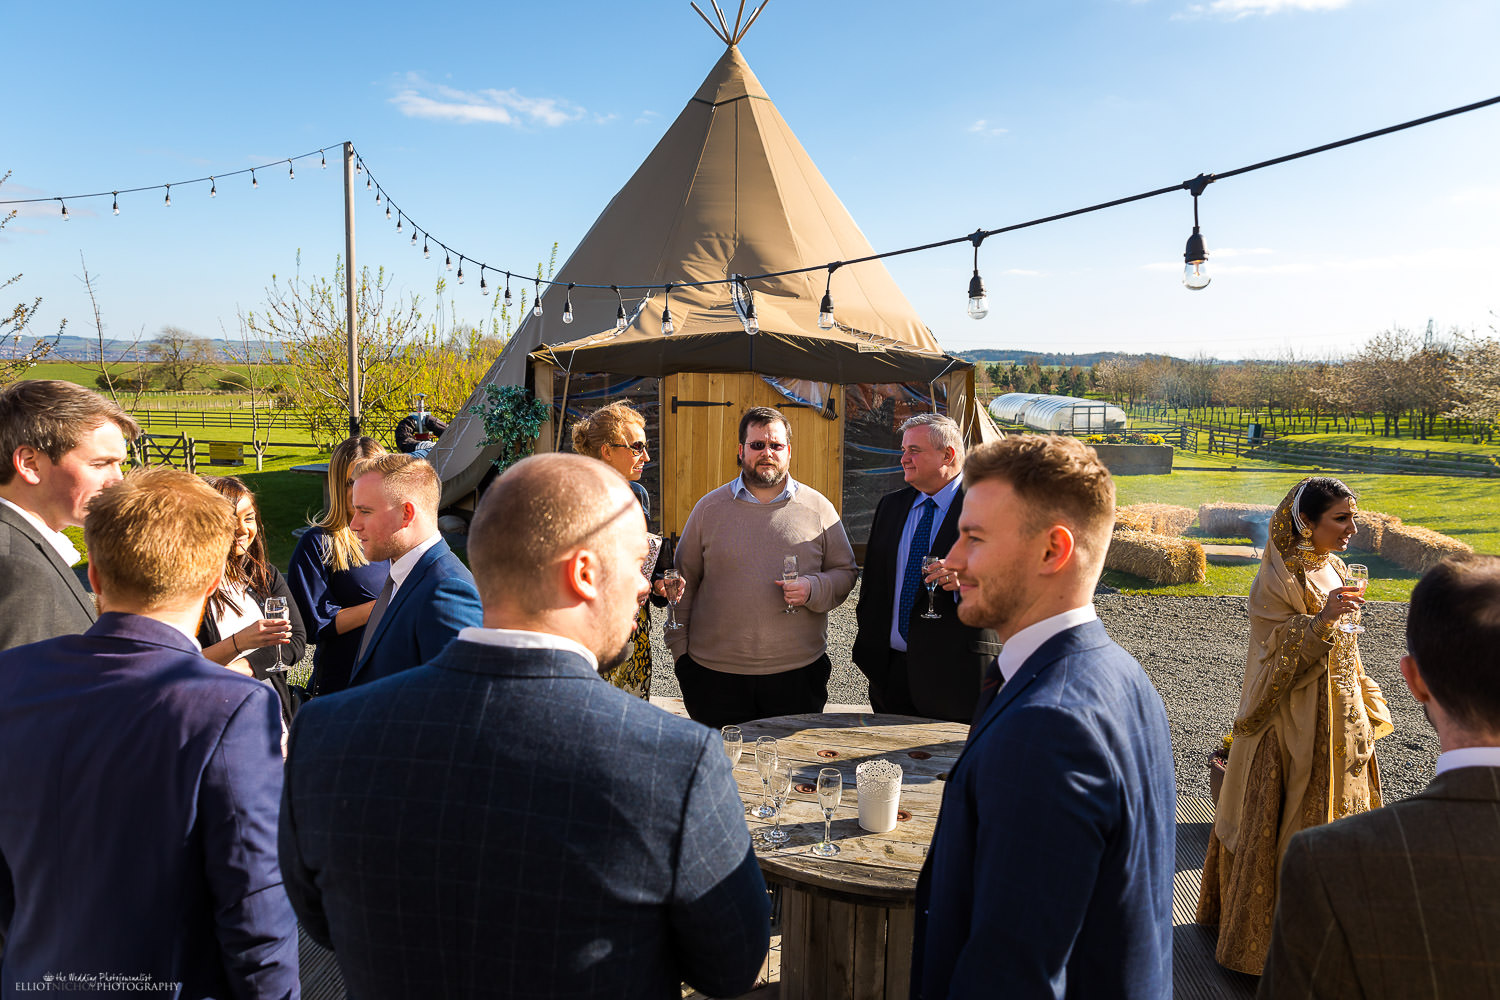 Engagement party at Vallum farm. Guests having drinks next to the Tipi. Photo by Elliot Nichol Photography.